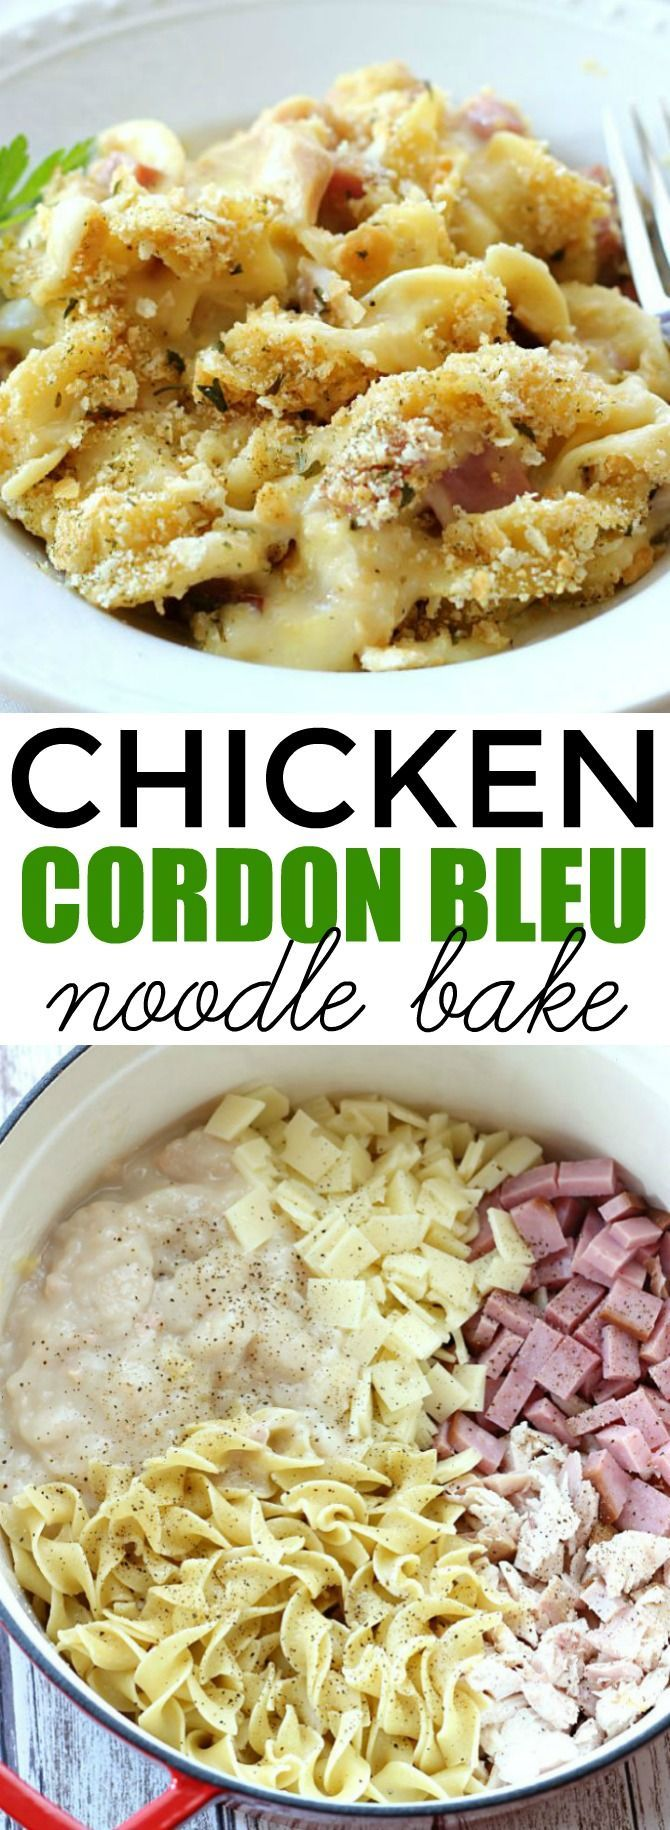 Cordon Bleu Noodle Bake This Chicken Cordon Bleu Noodle Bake makes an easy, comforting dinner any day of the week. It's a delicious one-pot meal the whole family will love!This Chicken Cordon Bleu Noodle Bake makes an easy, comforting dinner any day of the week. It's a delicious one-pot meal the whole family will love!